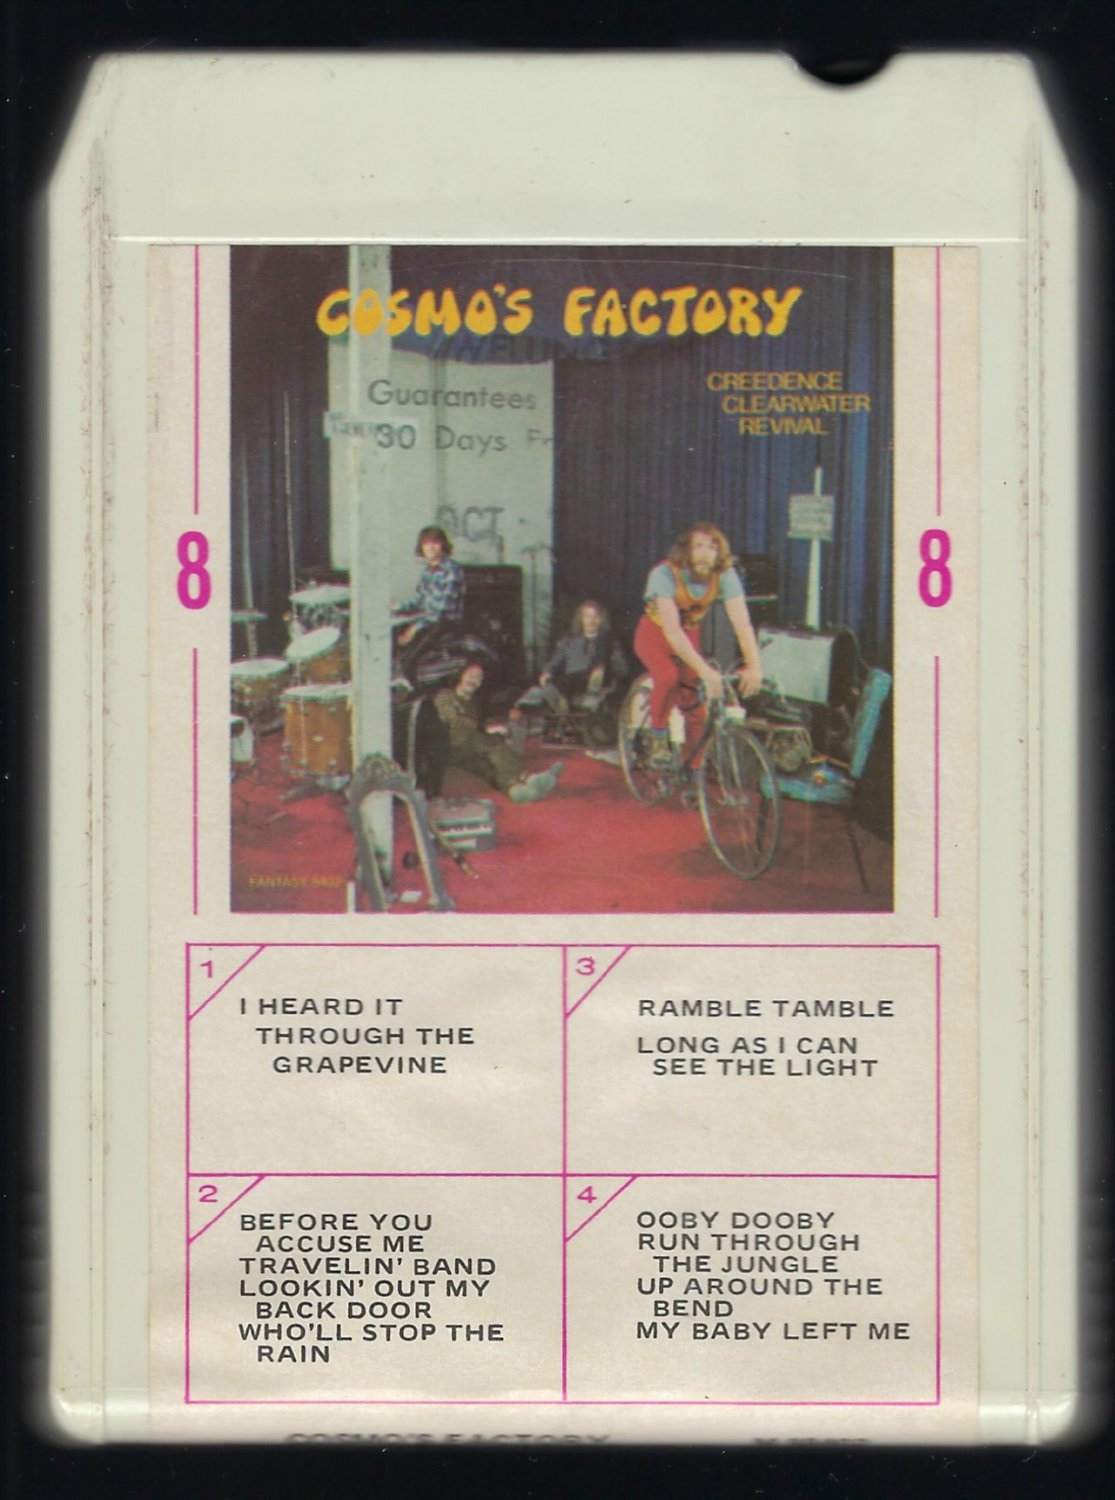 Creedence Clearwater Revival - Cosmo's Factory 1970 AMPEX FANTASY T9 8-TRACK TAPE